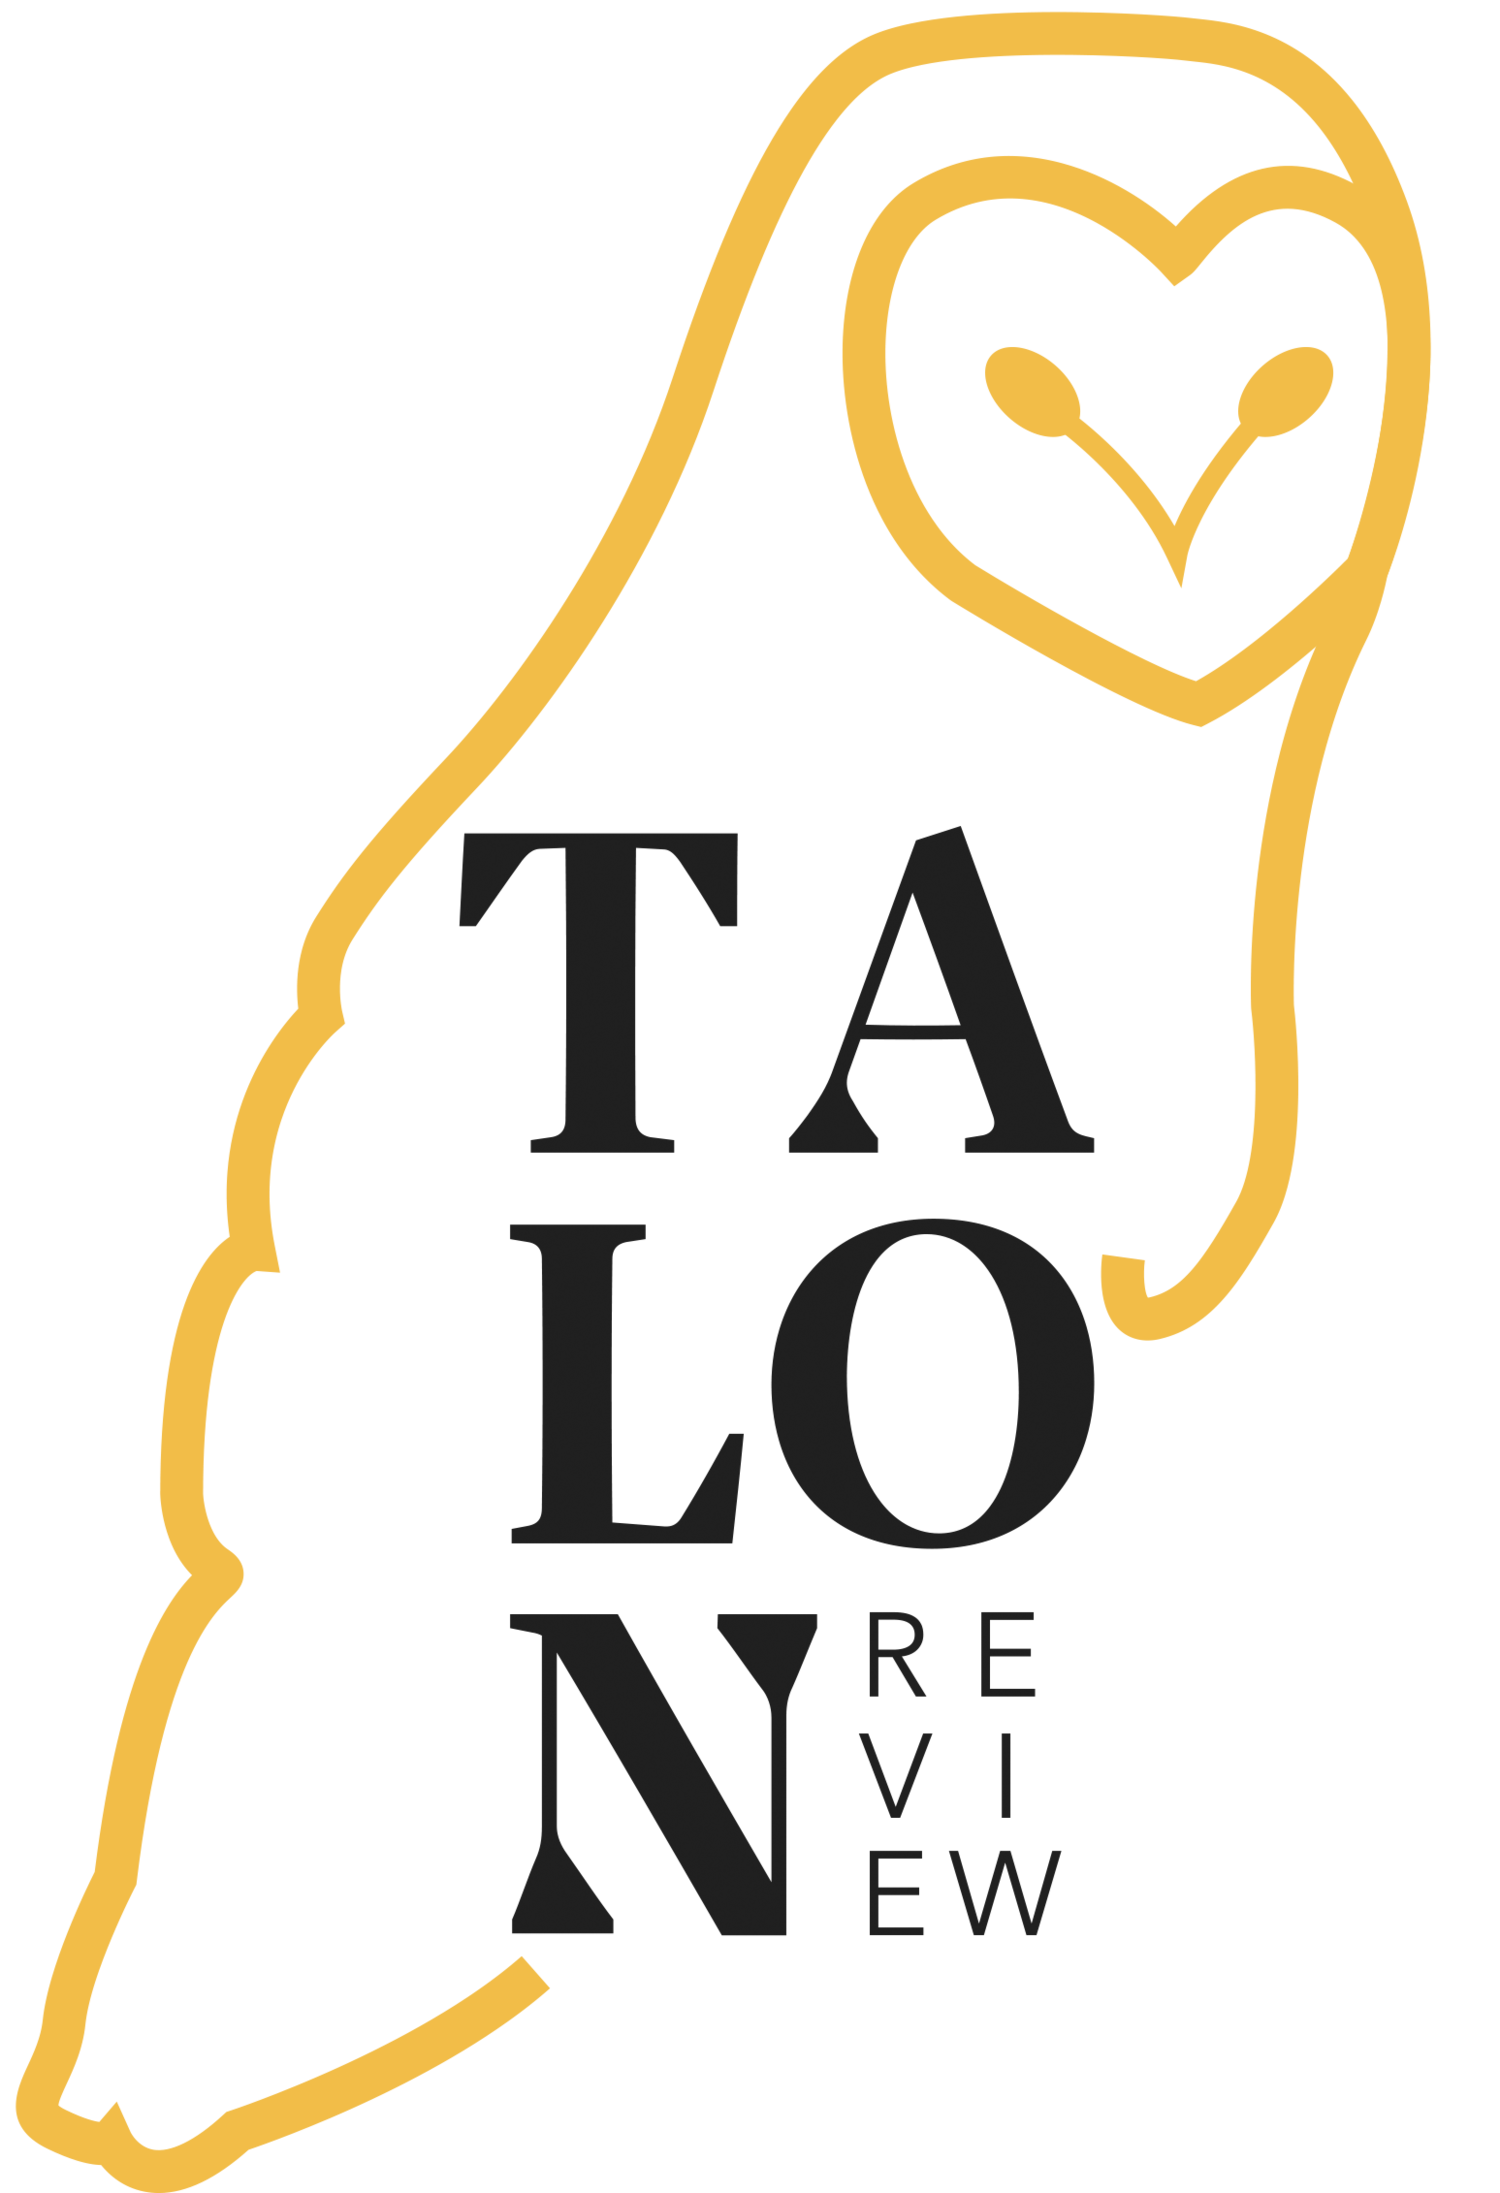 THE TALON REVIEW